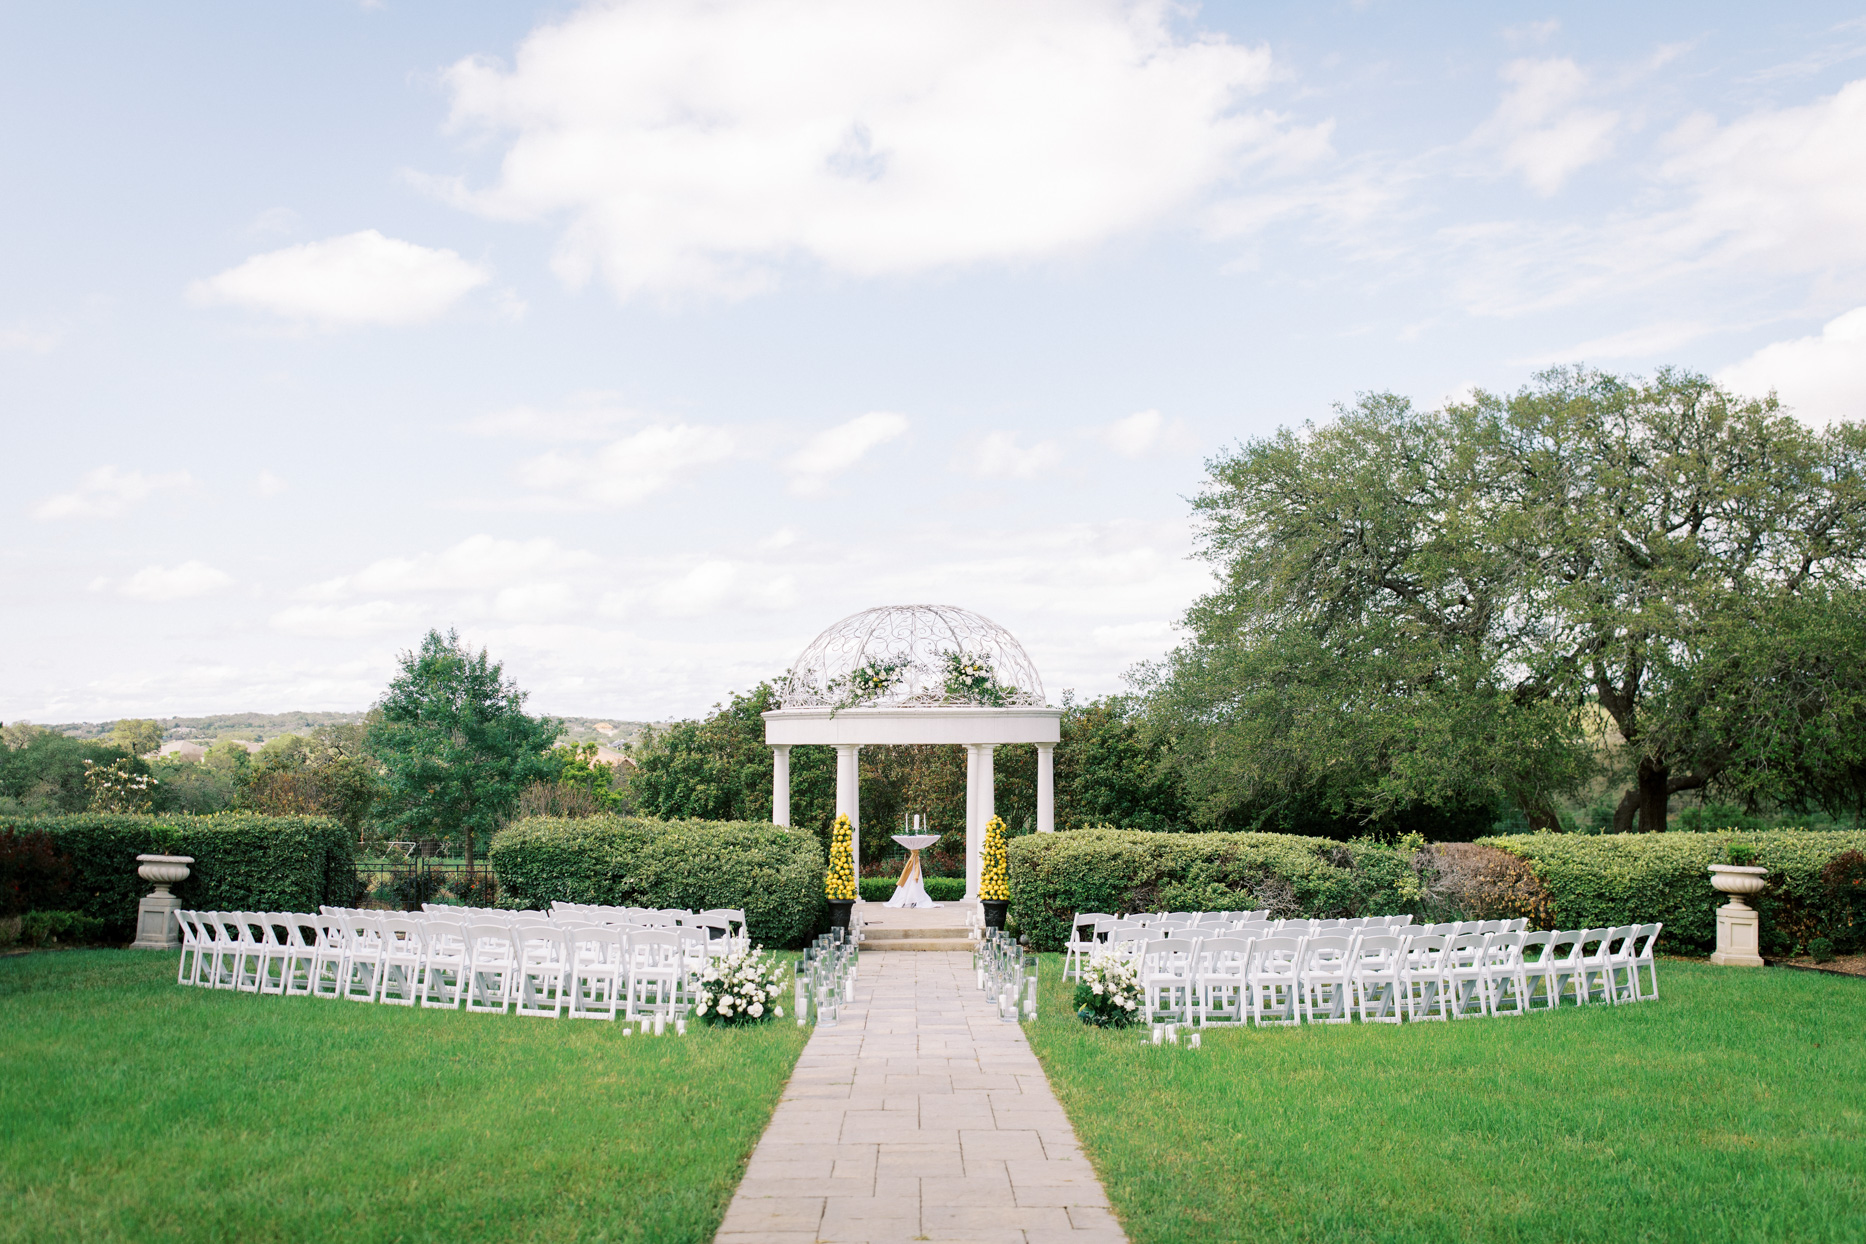 outdoor wedding ceremony set up with white chairs and floral decor